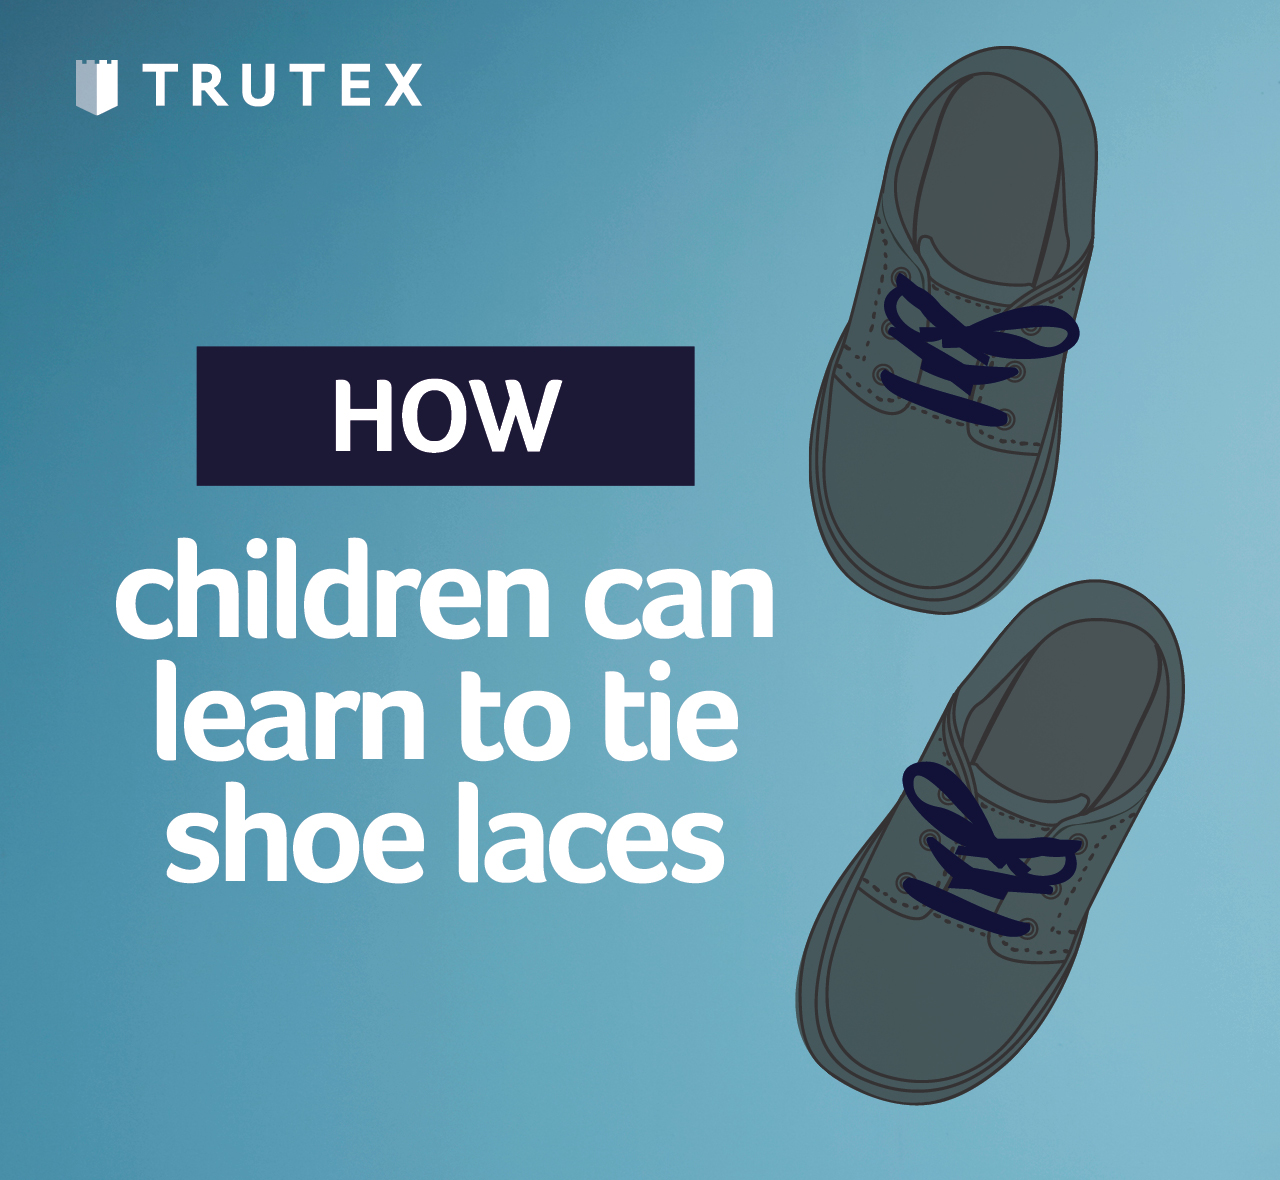 How children can learn to tie shoe laces